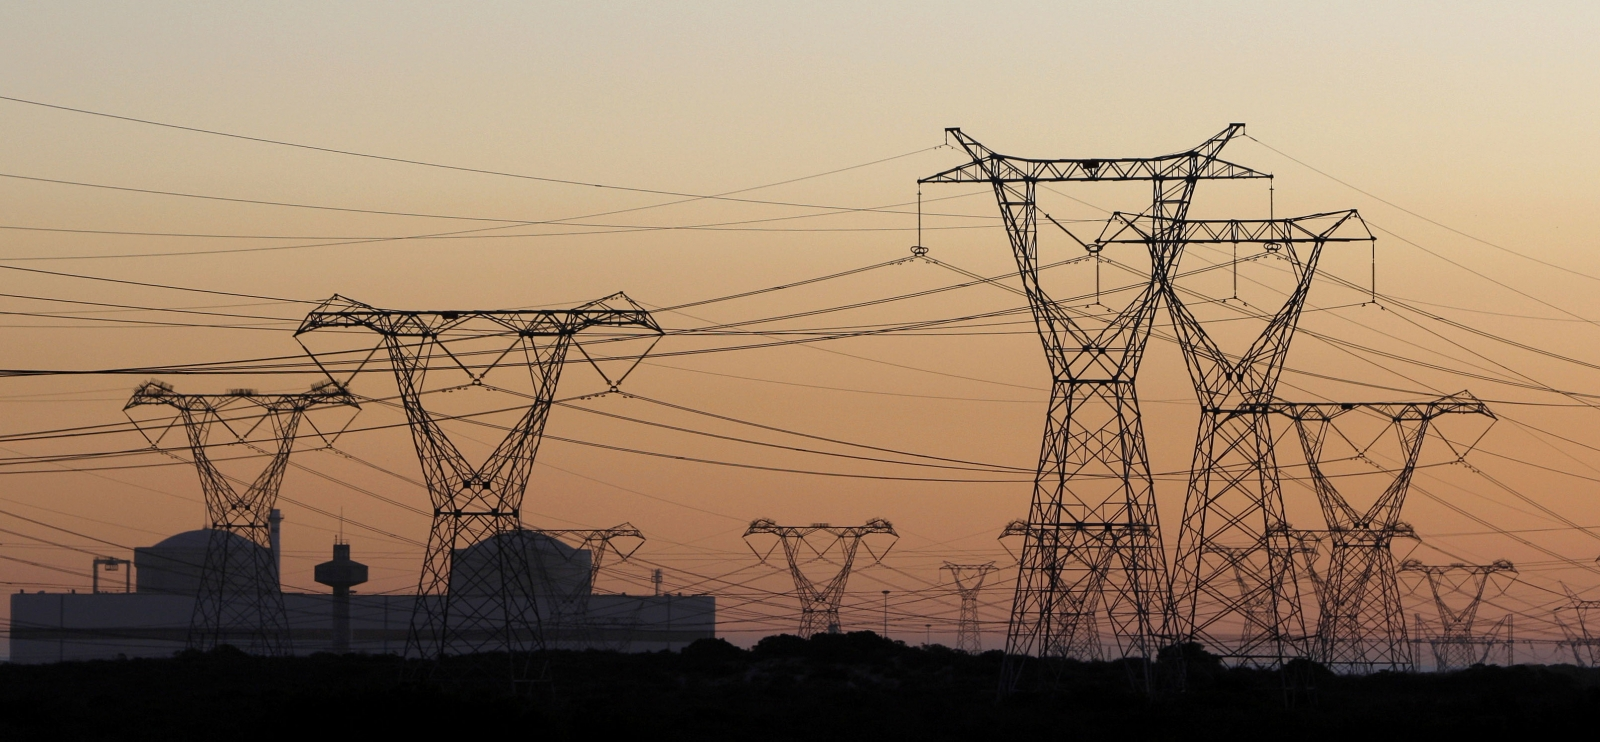 electricity and economy in kenya essay The direct influence of energy in economic growth still remains an interesting question among researchers unlike the role of energy in economic growth, studies have shown that there is a clear correlation between health and economic growth.